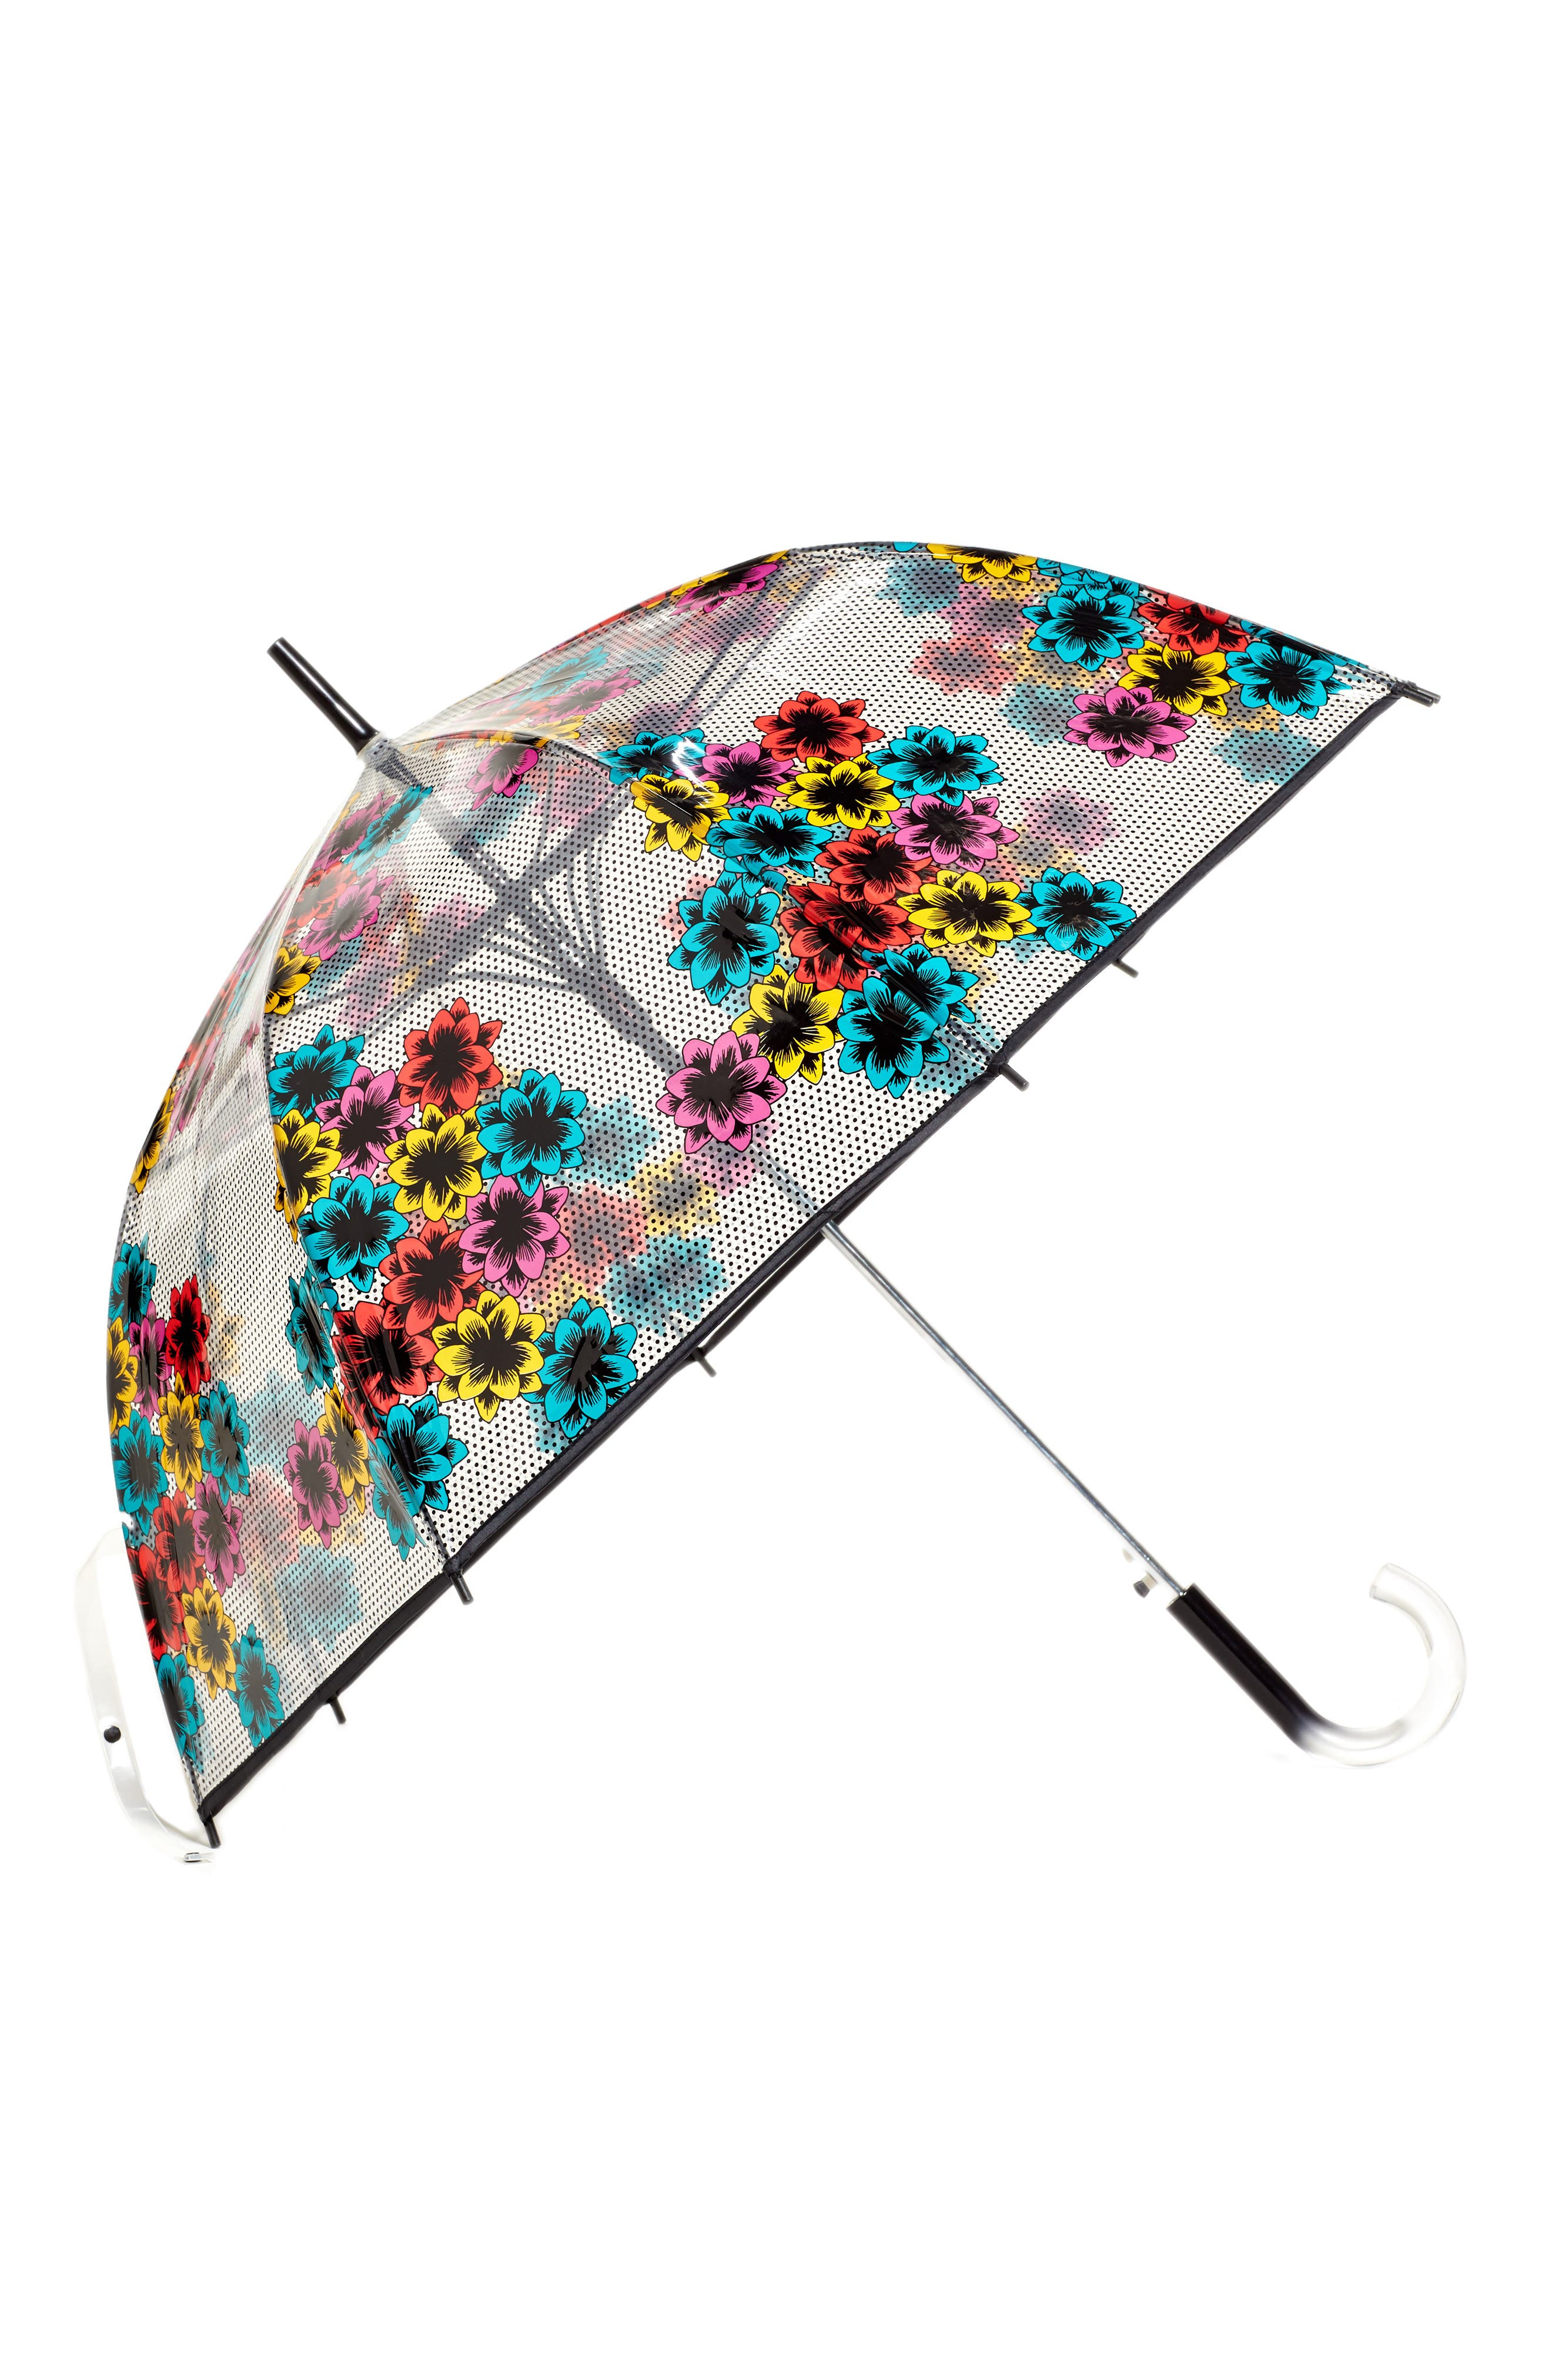 'The Bubble' Auto Open Stick Umbrella,                             Main thumbnail 1, color,                             NORD POP FLEUR